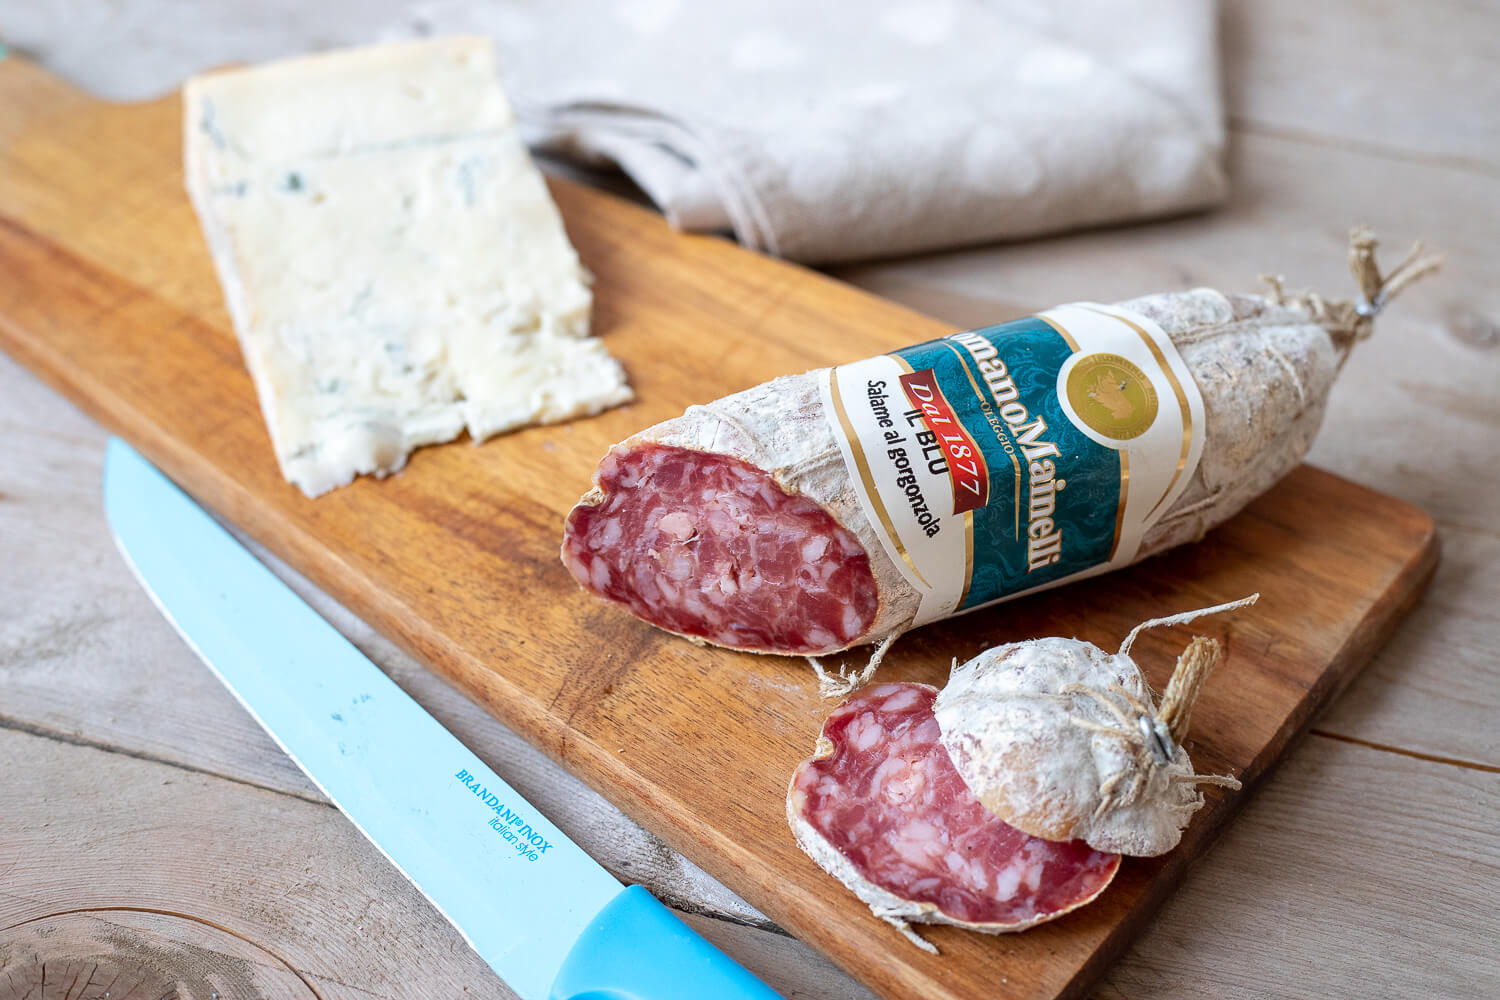 Salame italiano with Gorgonzola – circa 250gr